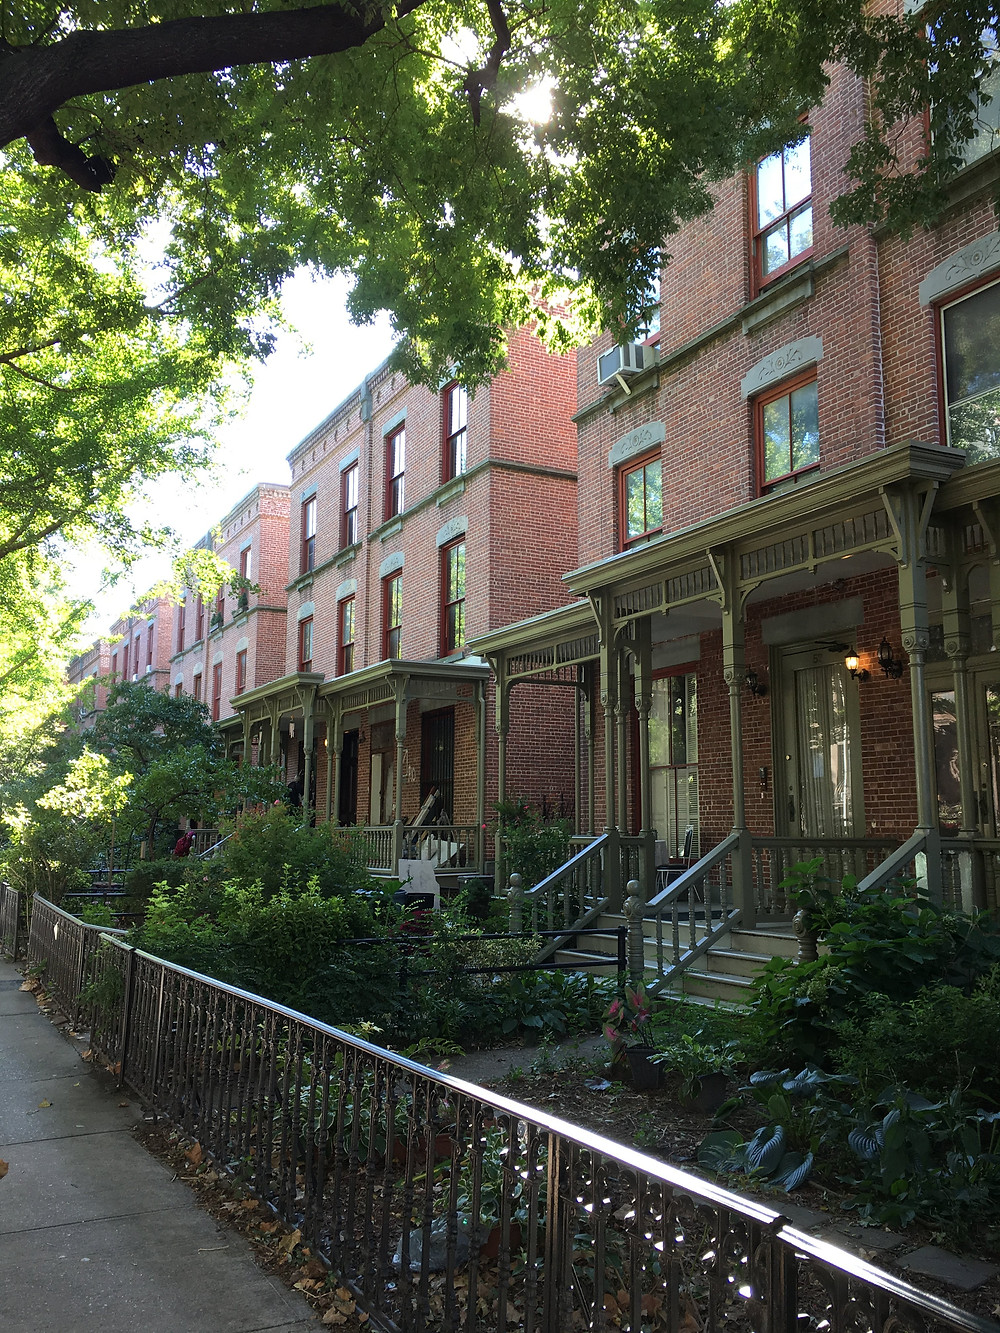 Beautiful streets in Harlem like Astor Row